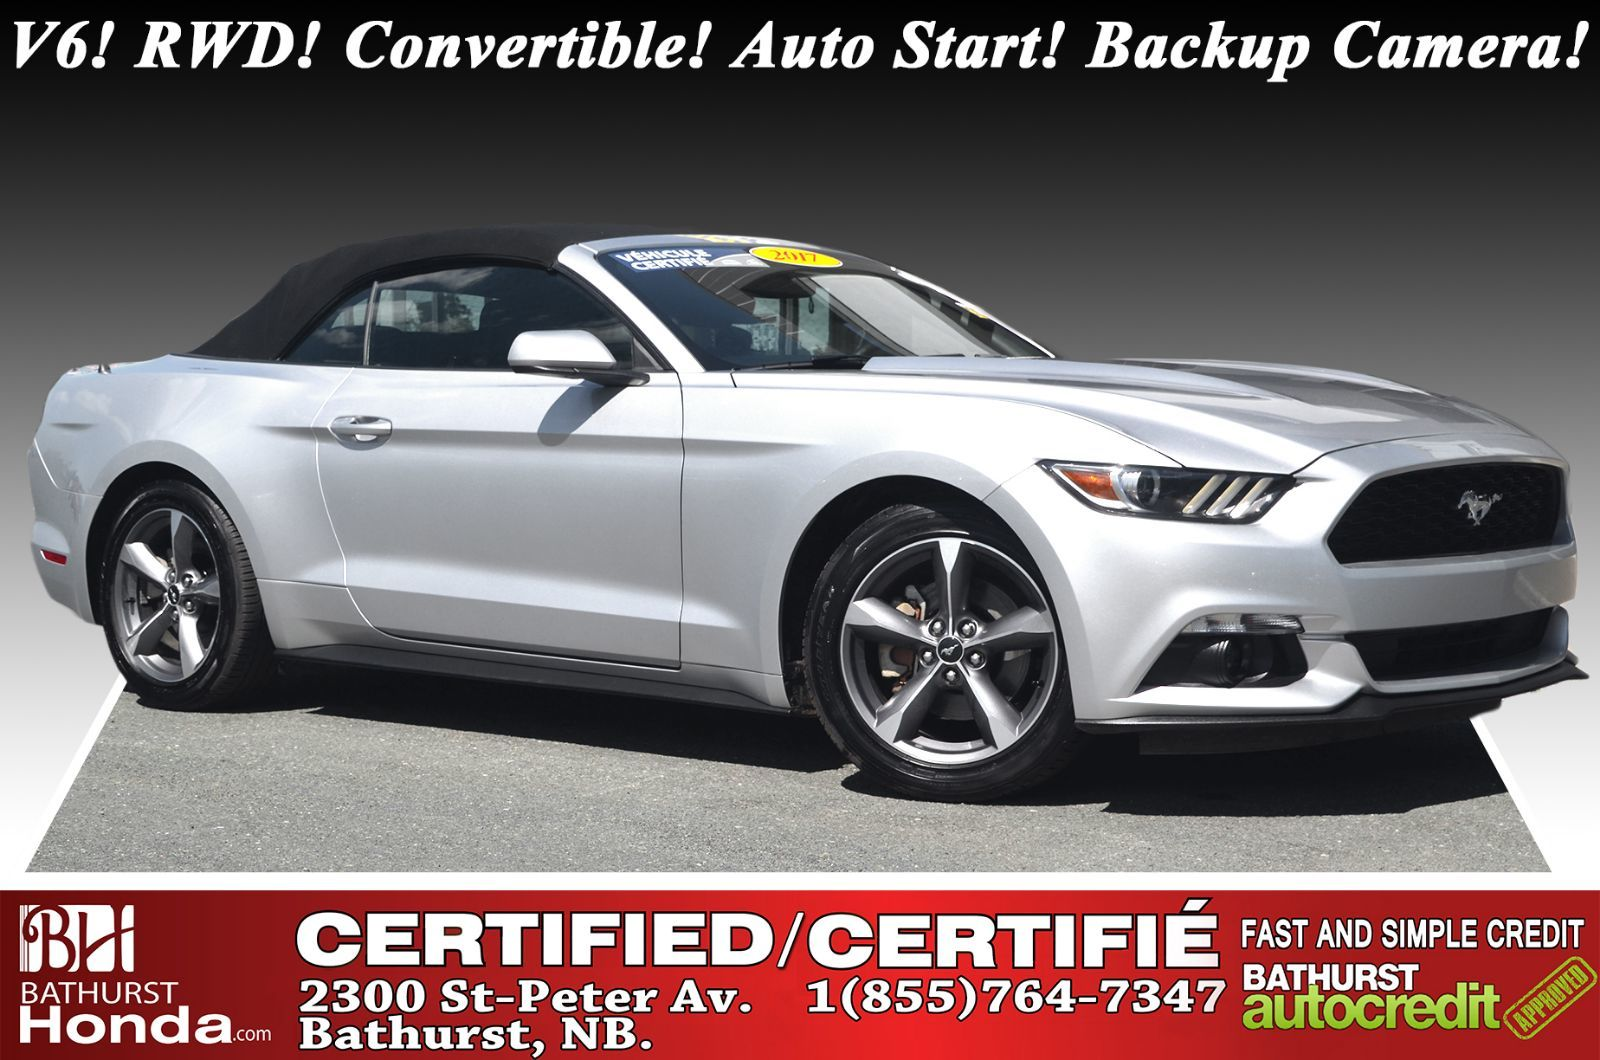 2017 Ford Mustang V6 Rwd Convertible Auto Start Backup Camera Satellite Radio Bluetooth Used For Sale In Bathurst Credit